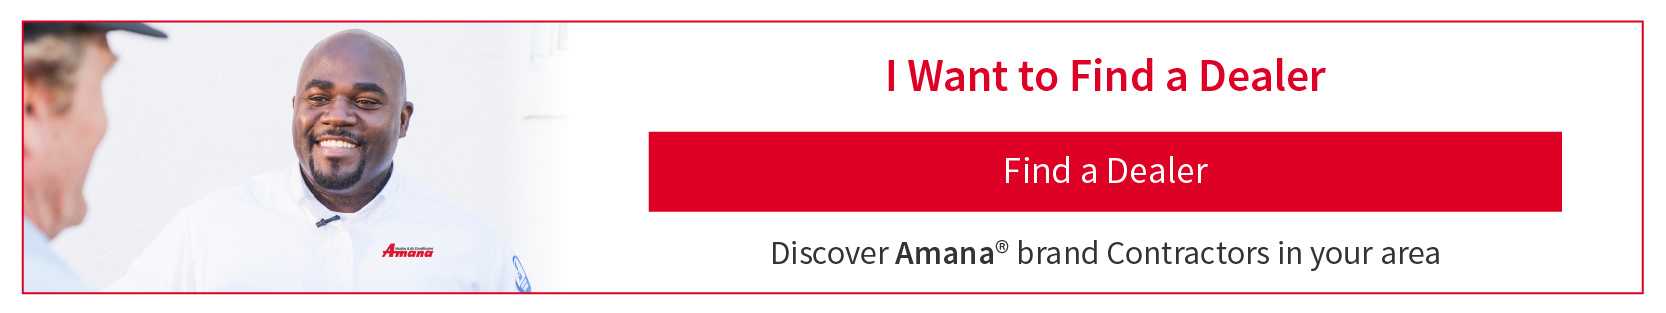 Find an Amana brand dealer